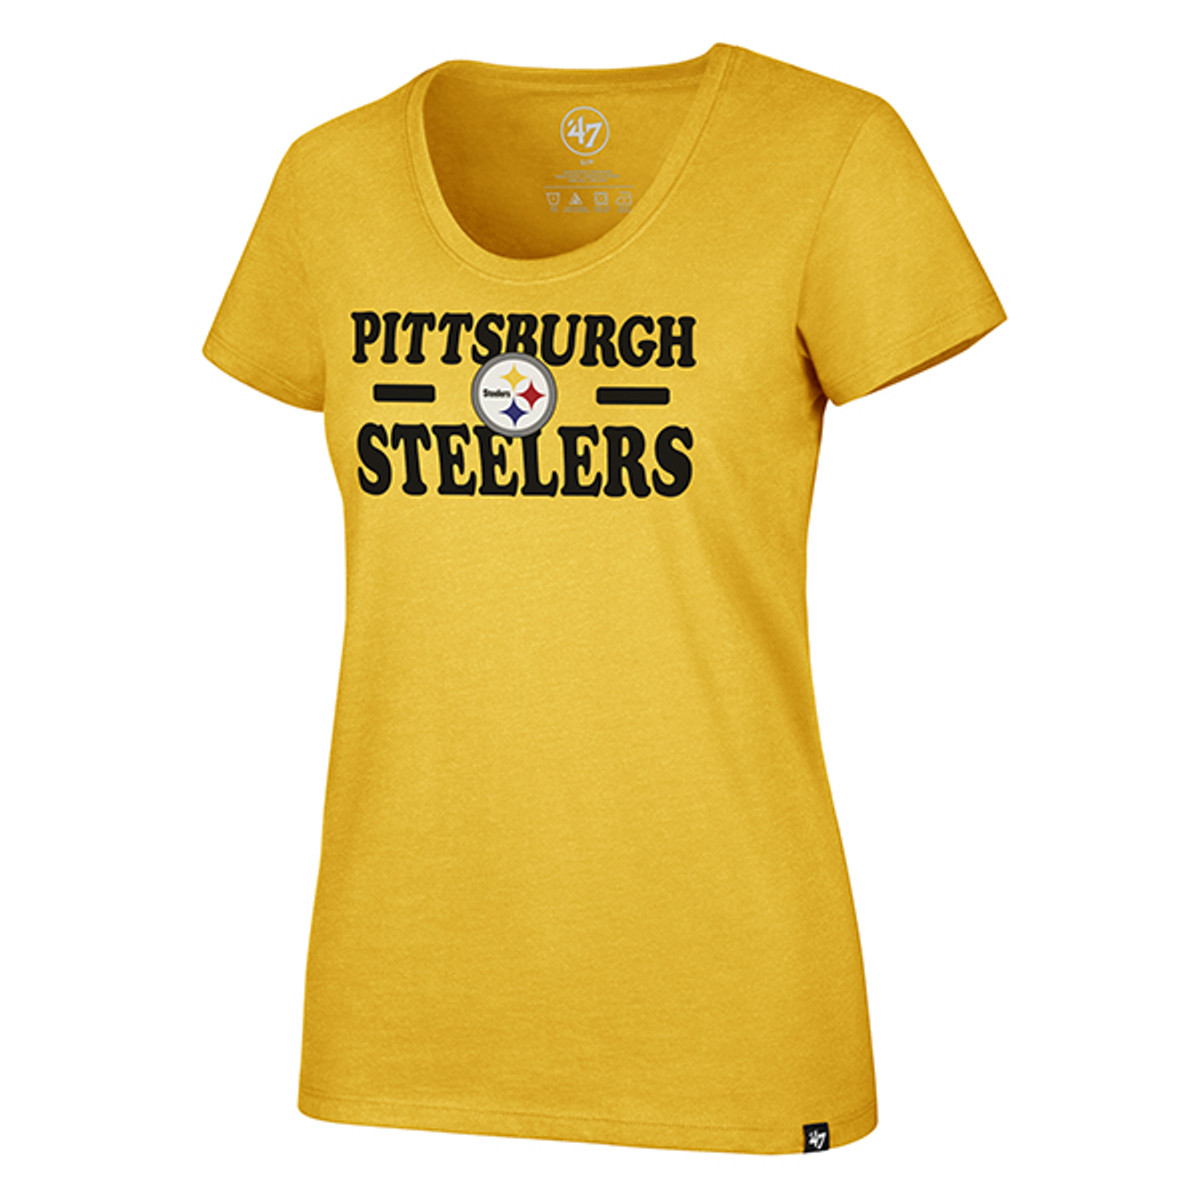 PITTSBURGH STEELERS GALLEY GOLD GLITZ CLUB SCOOP NECK TEE